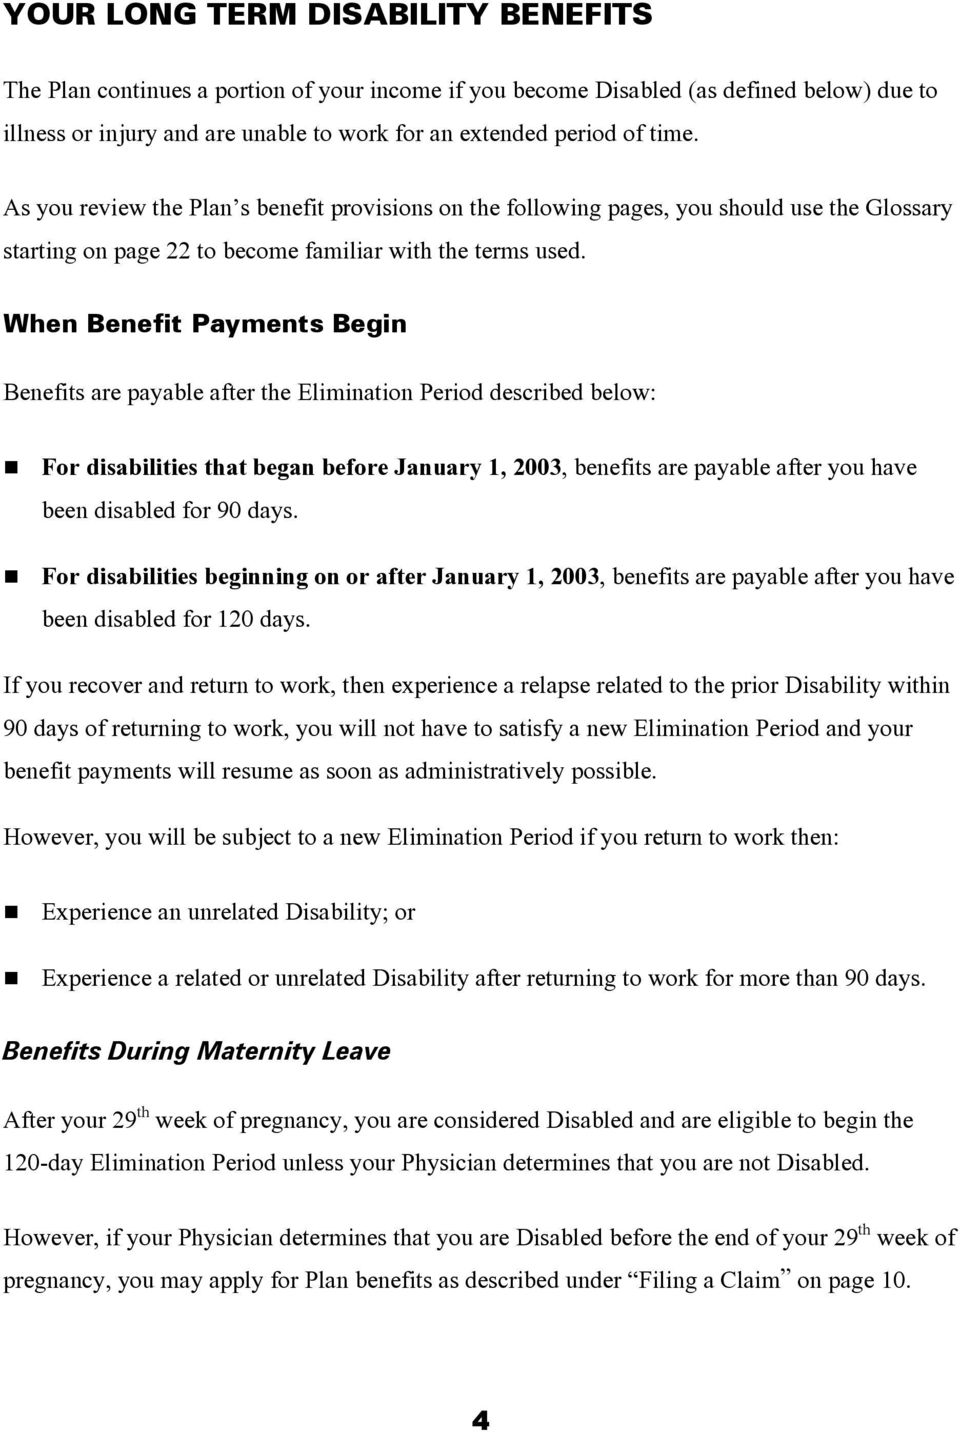 When Benefit Payments Begin Benefits are payable after the Elimination Period described below: For disabilities that began before January 1, 2003, benefits are payable after you have been disabled